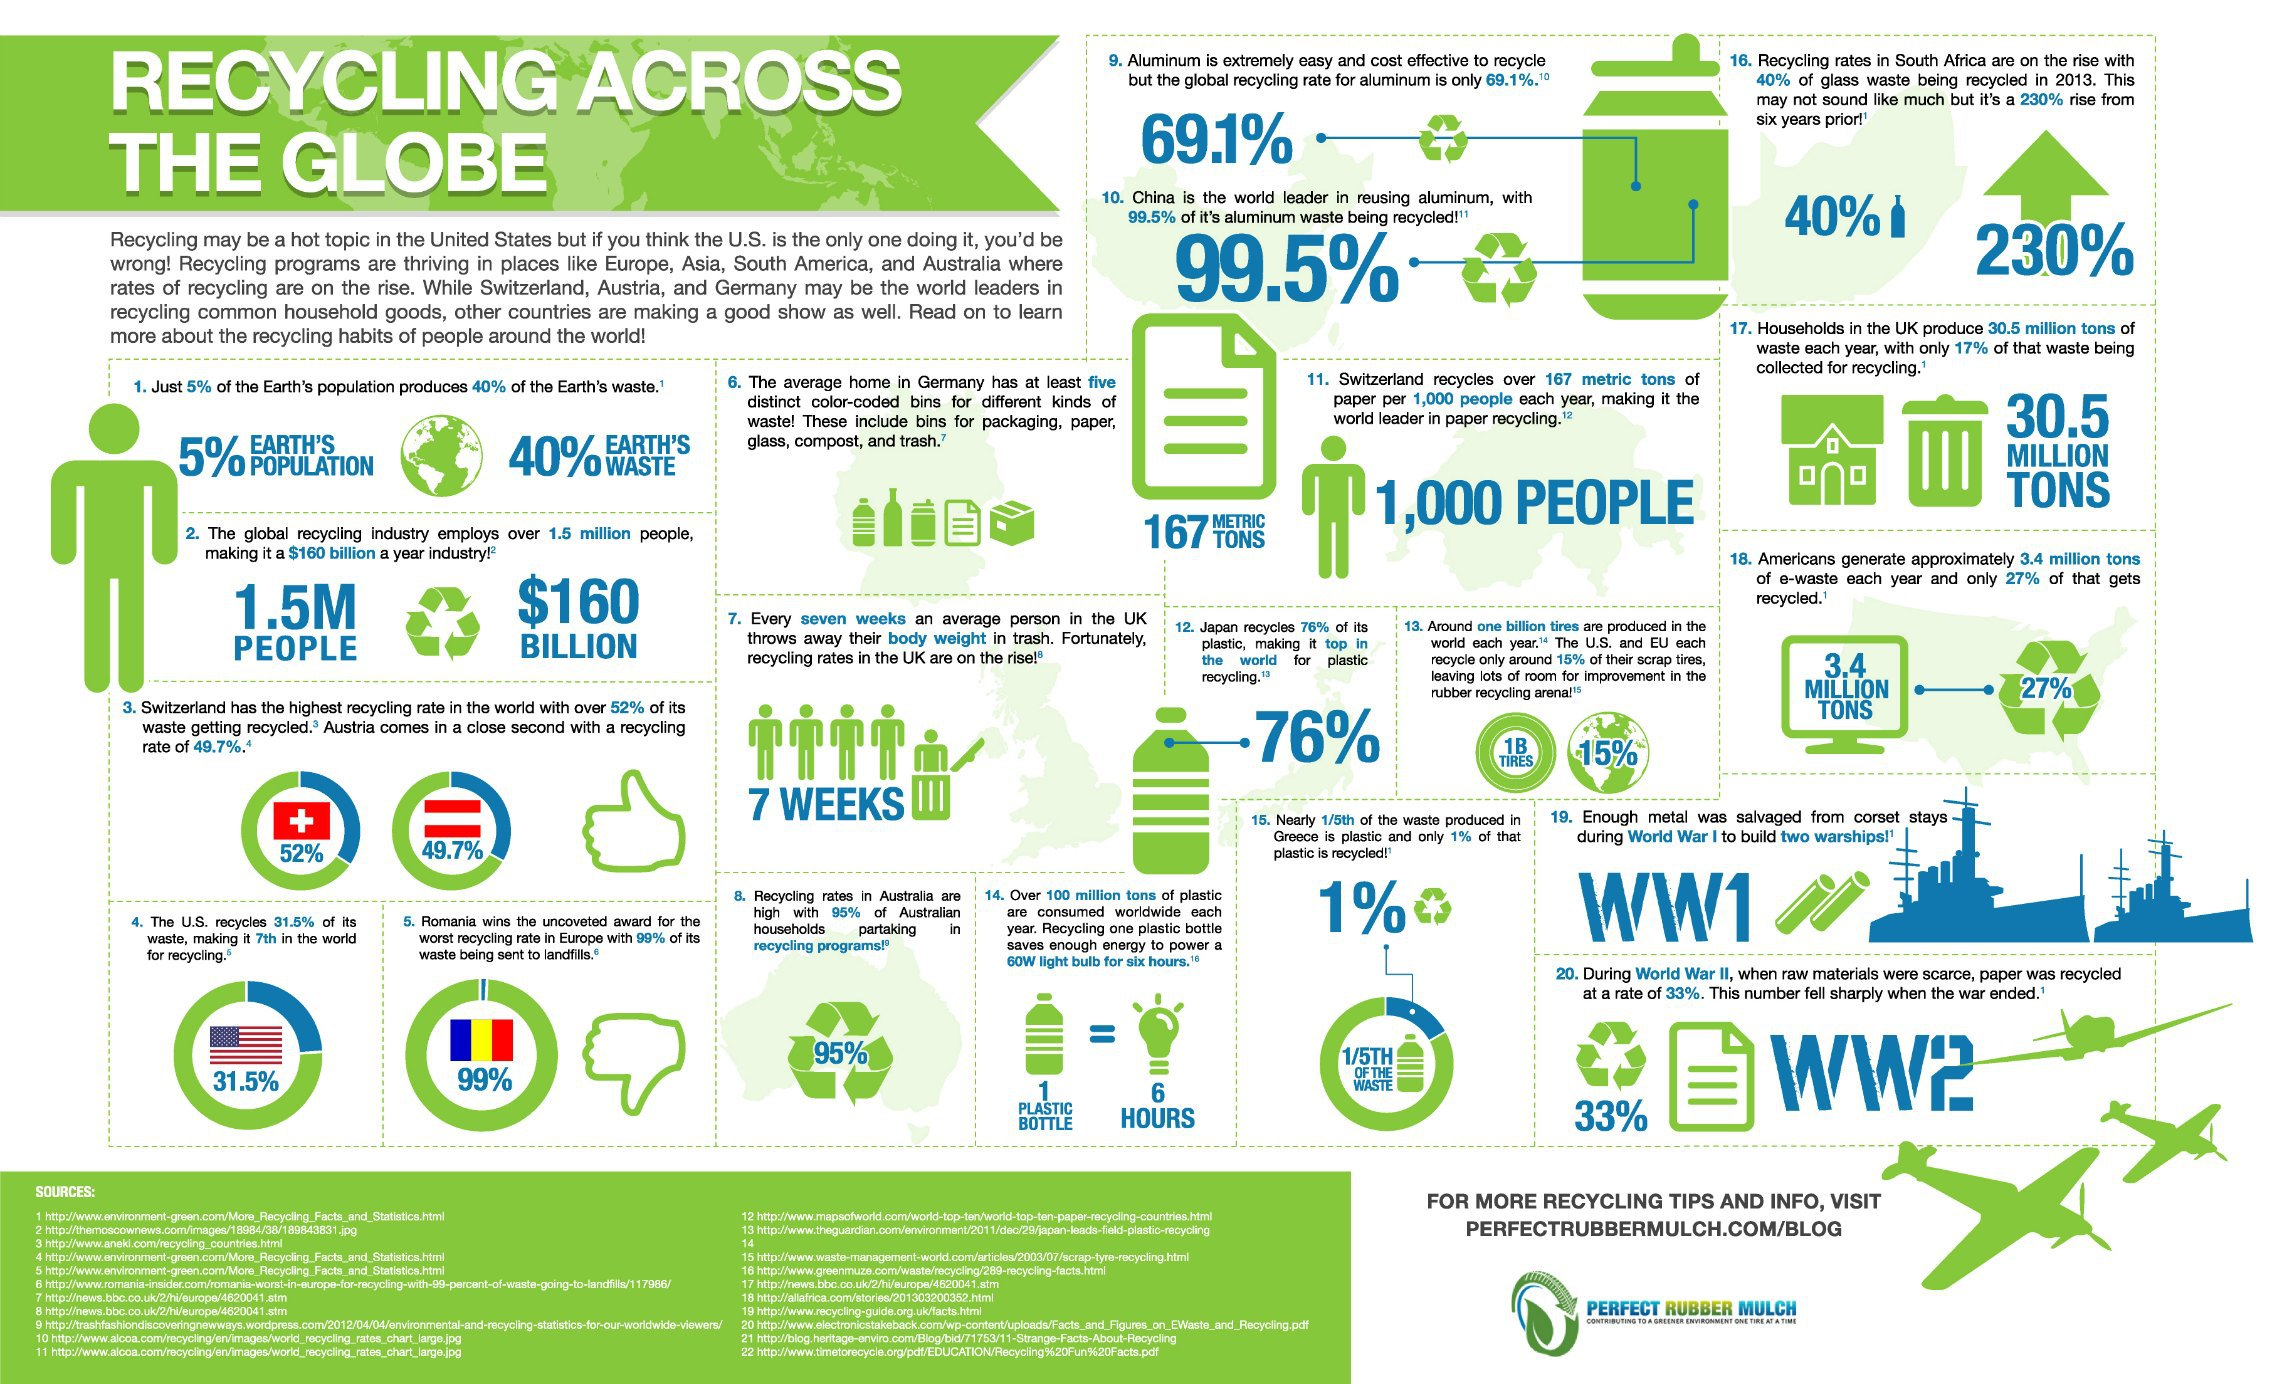 Recycling Across the Globe Infographic